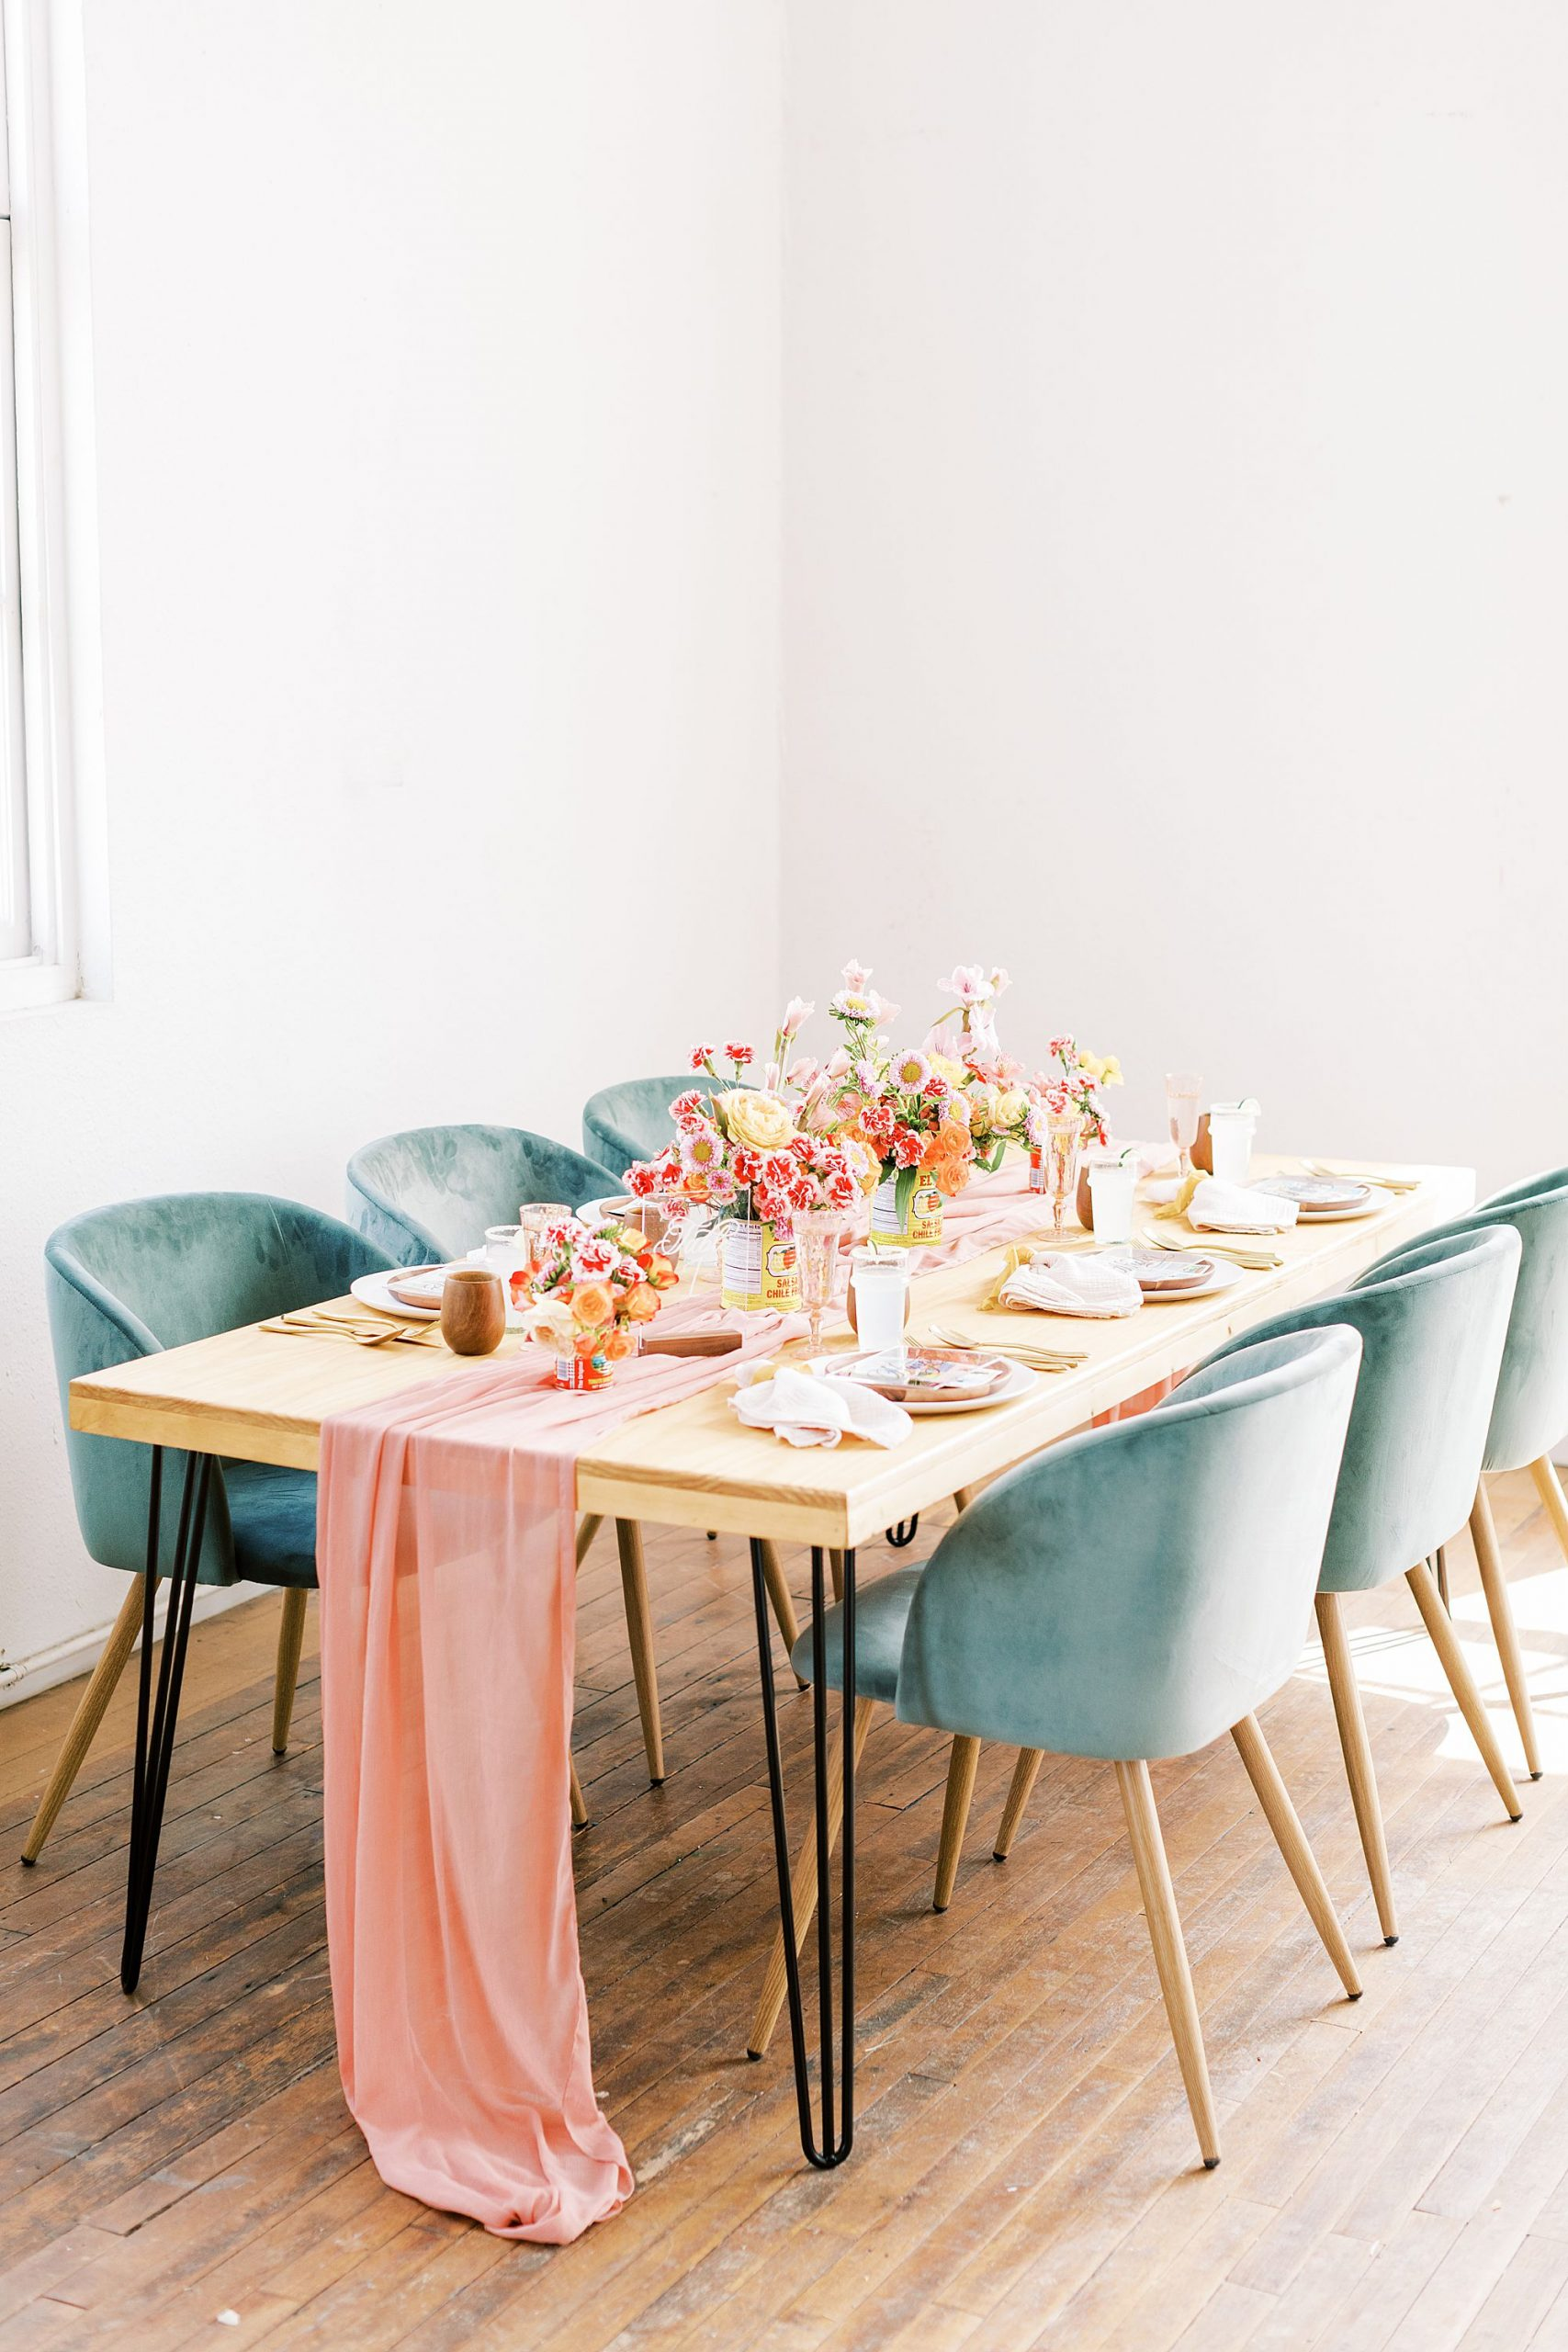 Cinco De Mayo Inspiration for Your FIesta - Party Crush Studio and Ashley Baumgartner_0001.jpg